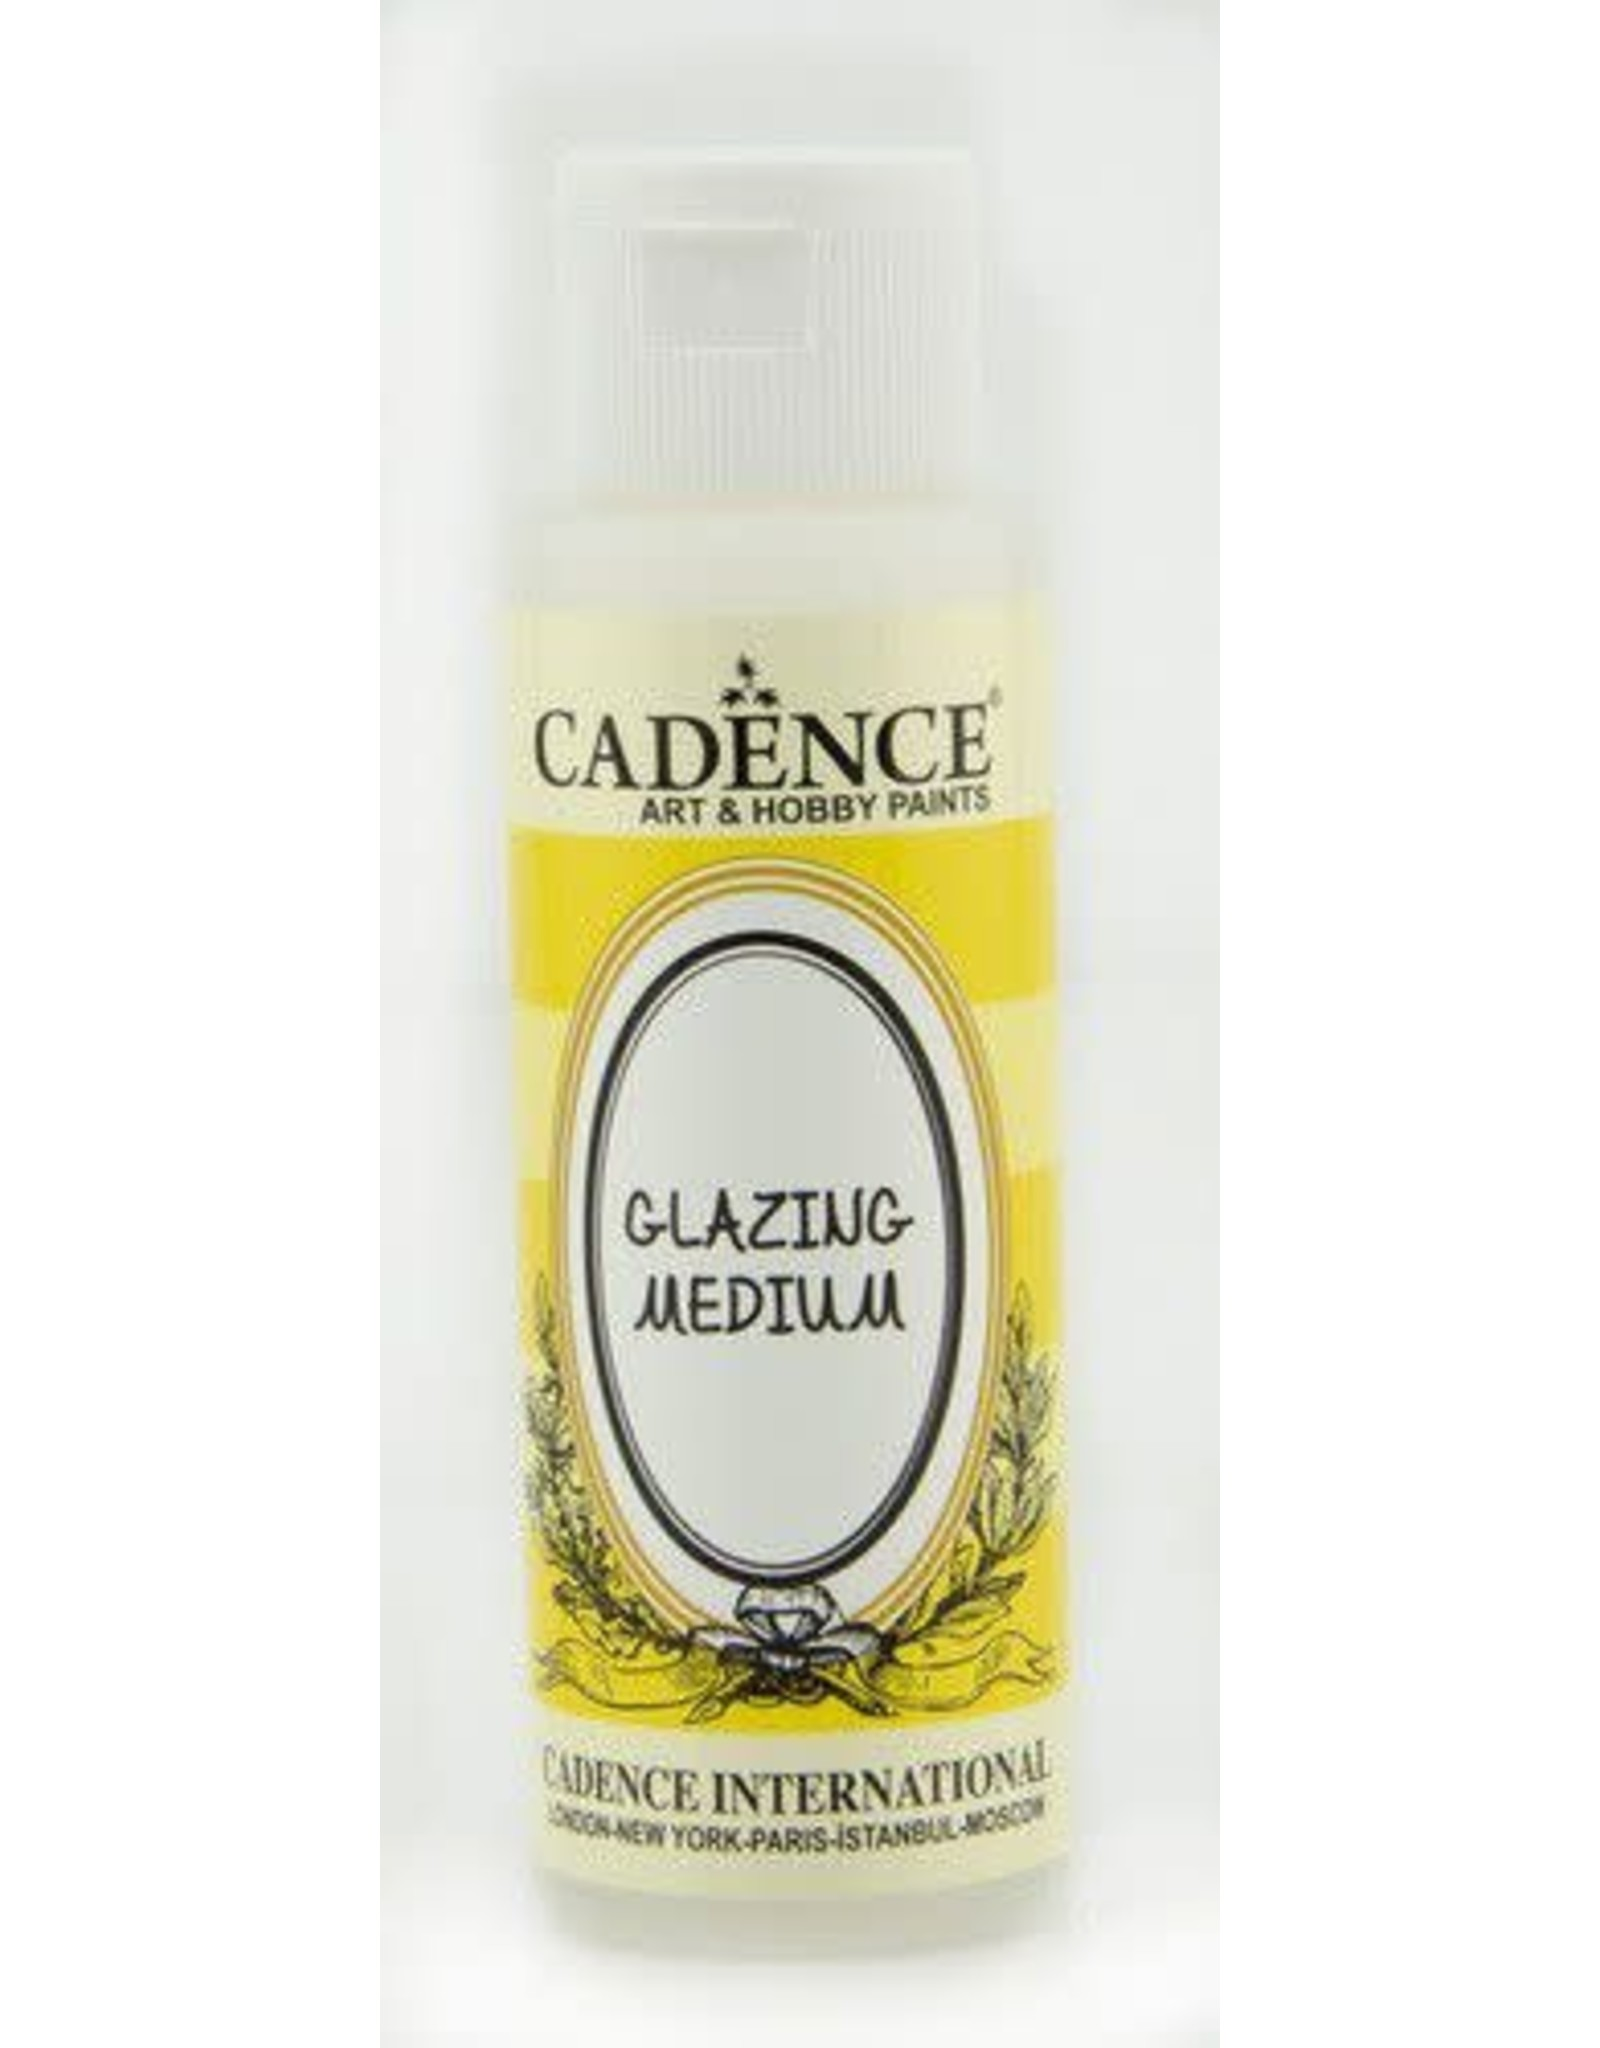 Cadence Cadence Glazing medium 01 037 0001 0070 70 ml